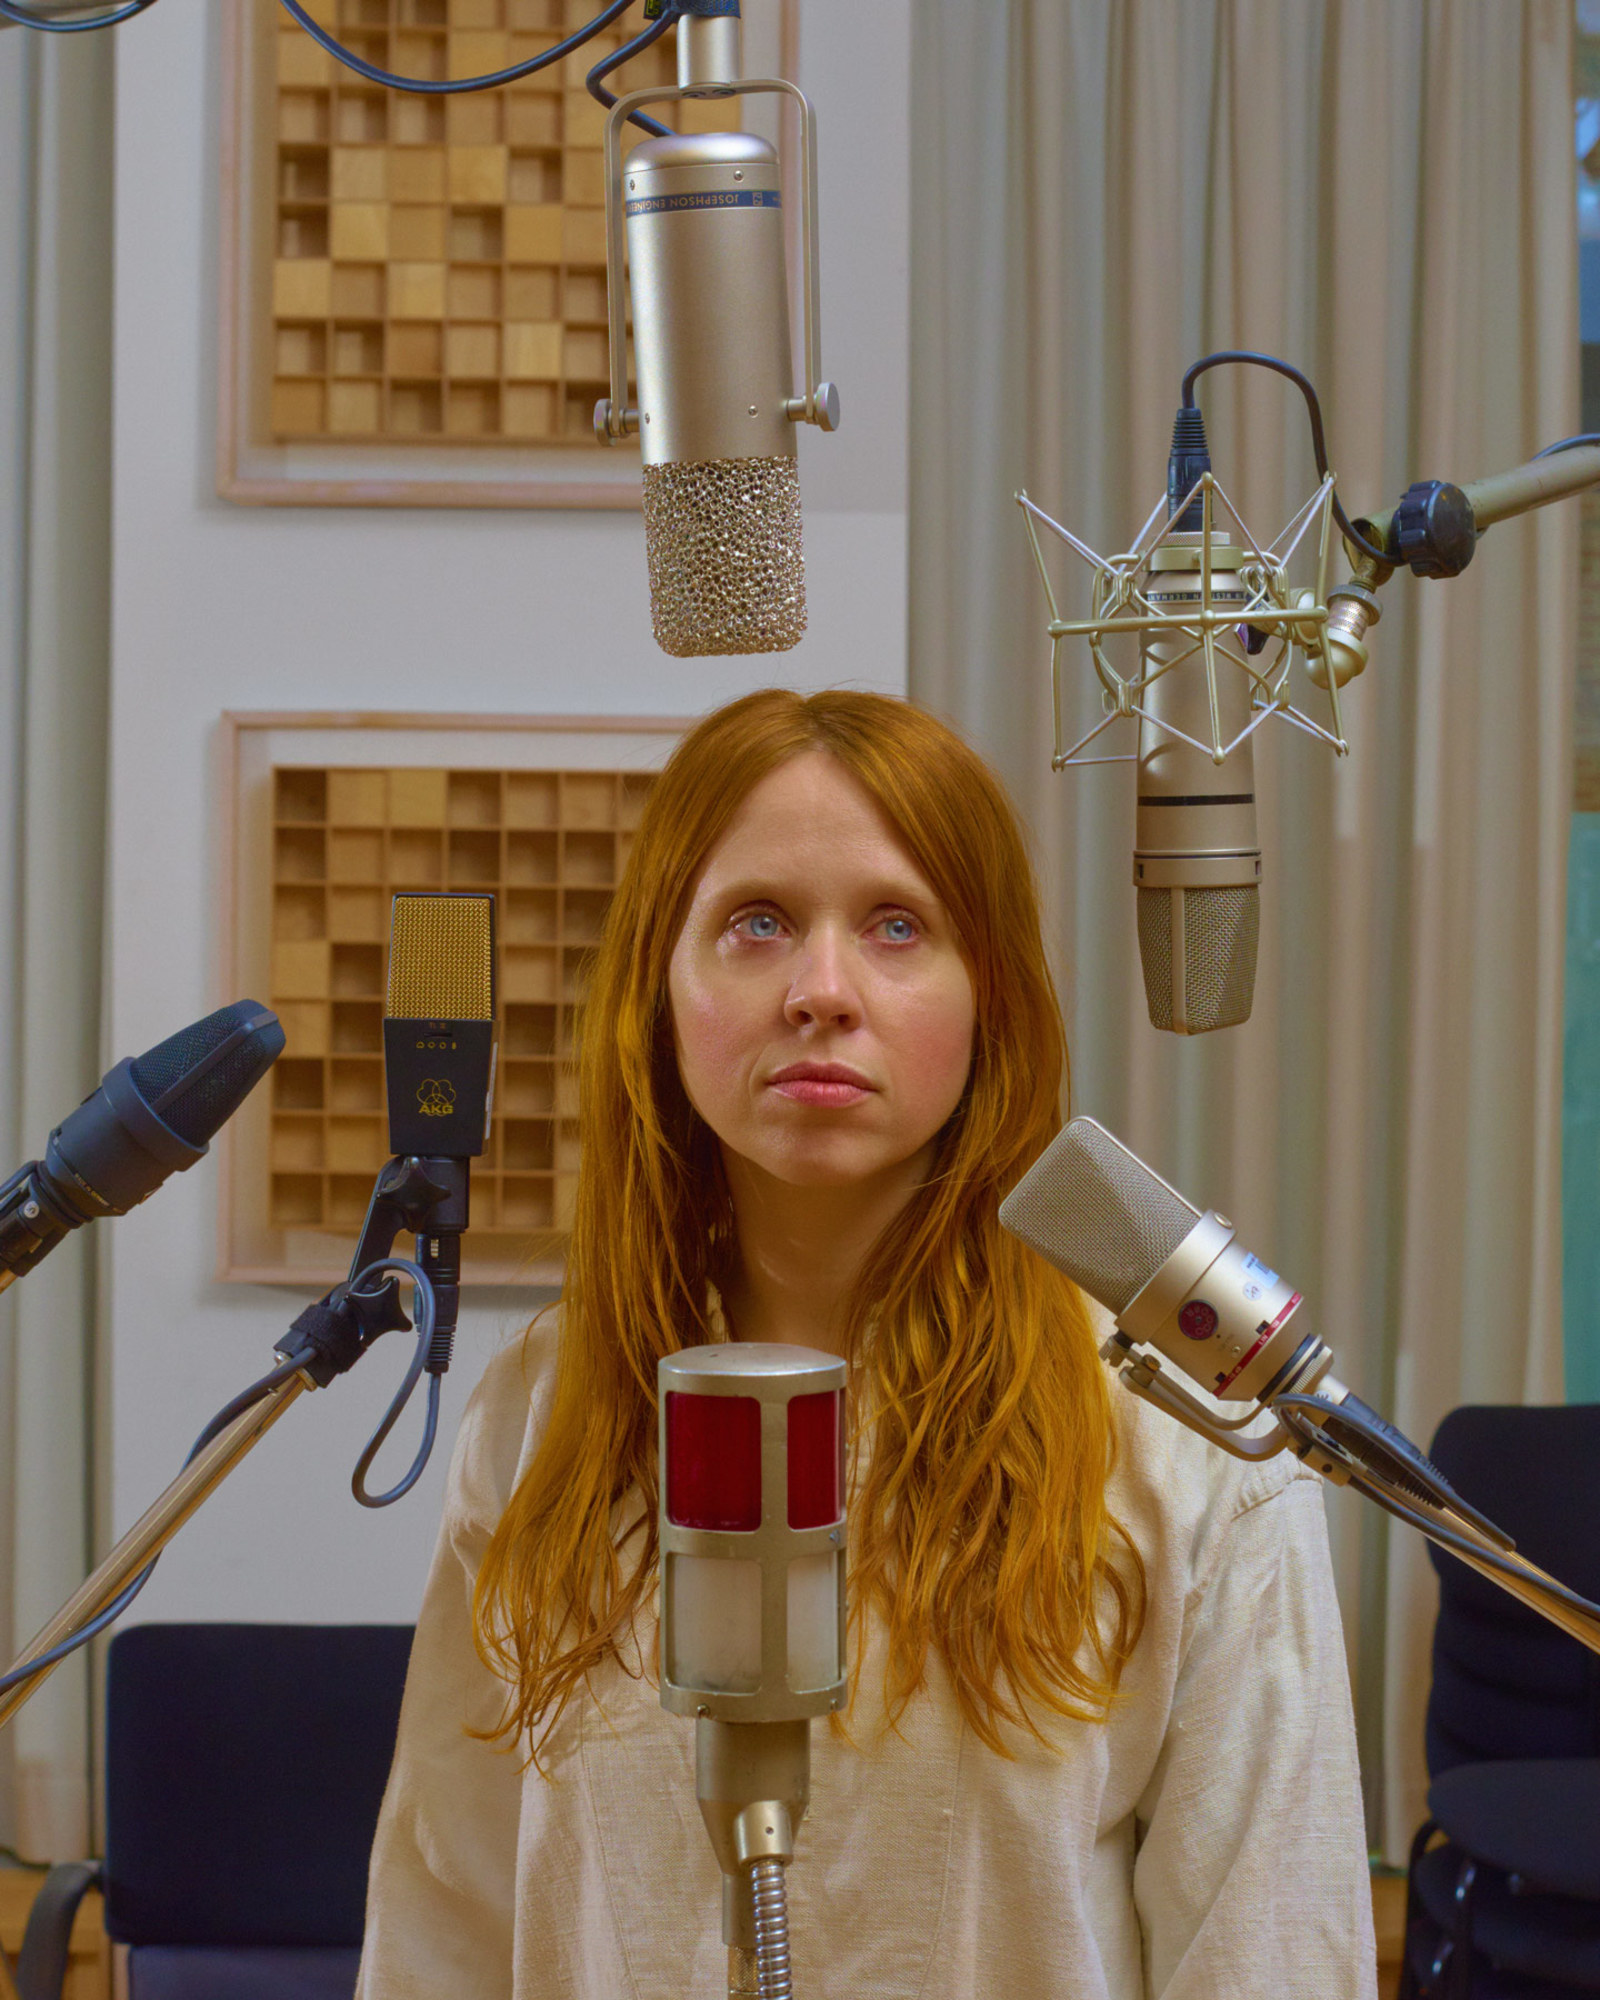 Voices of AI with Holly Herndon and Mat Dryhurst - Sónar+D Barcelona 2019